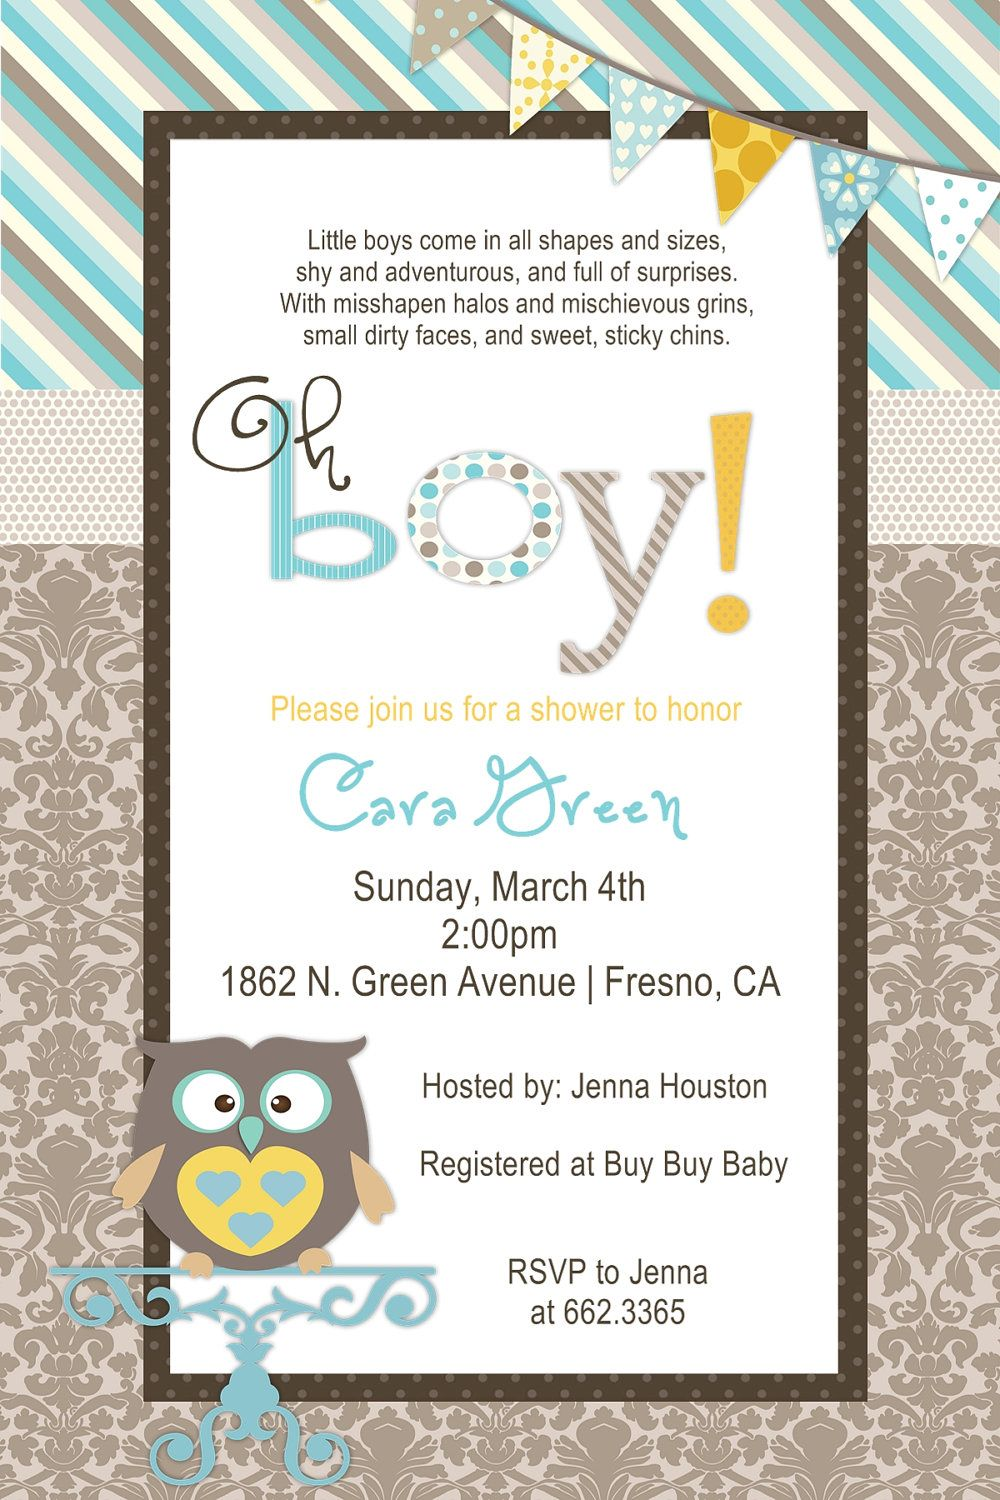 Baby boy owl baby shower invitation owl shower shower invitations baby boy owl baby shower invitation filmwisefo Image collections